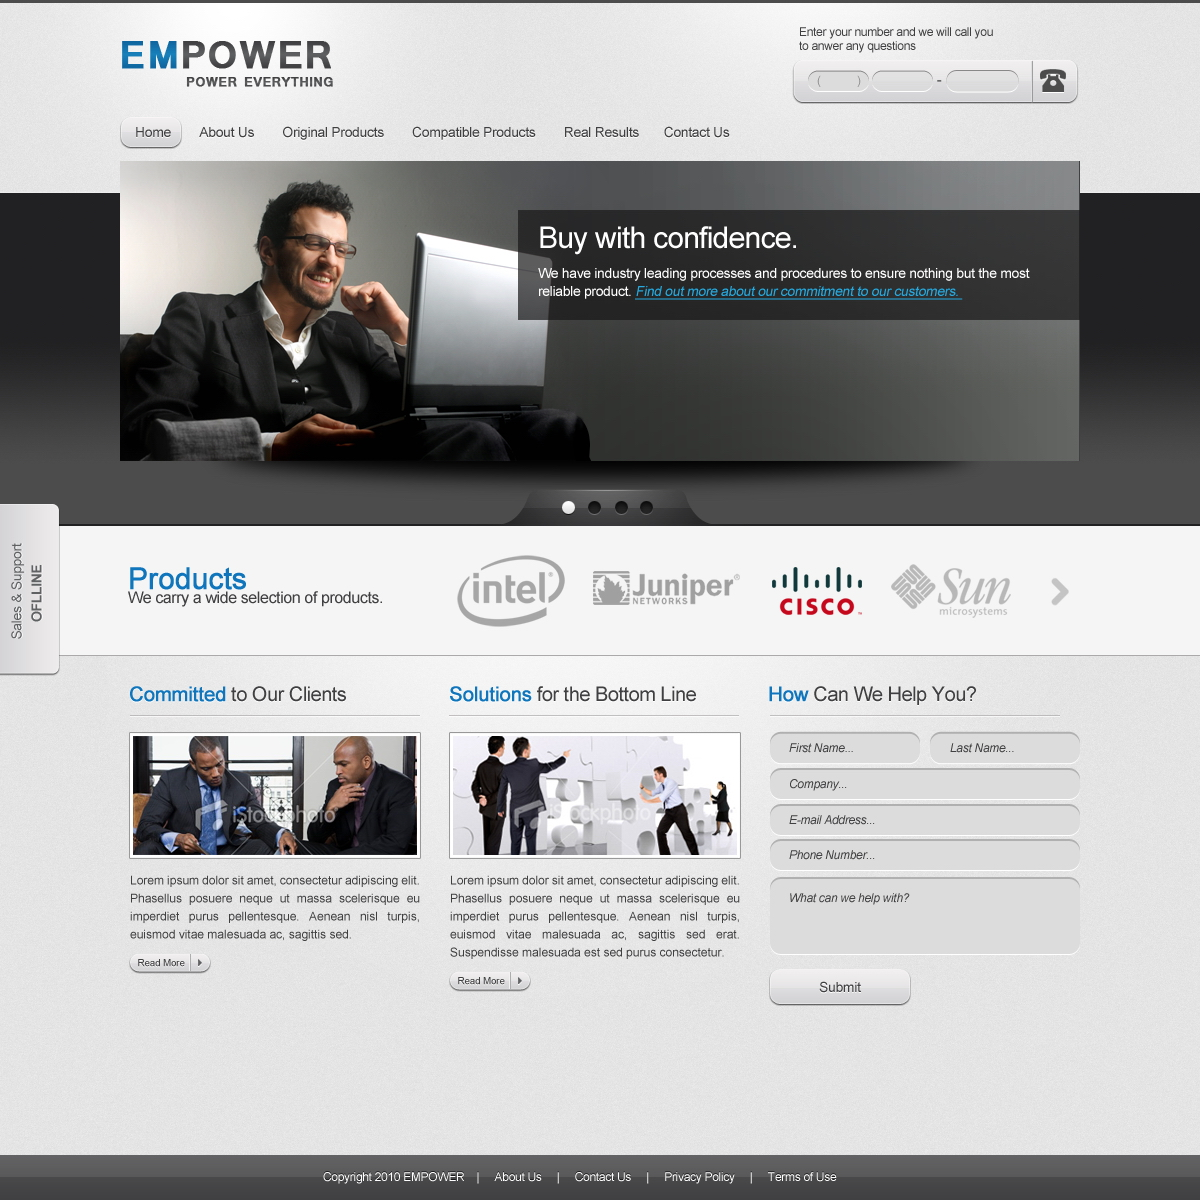 empower: corporate website template - free psd - ahmad hania blog